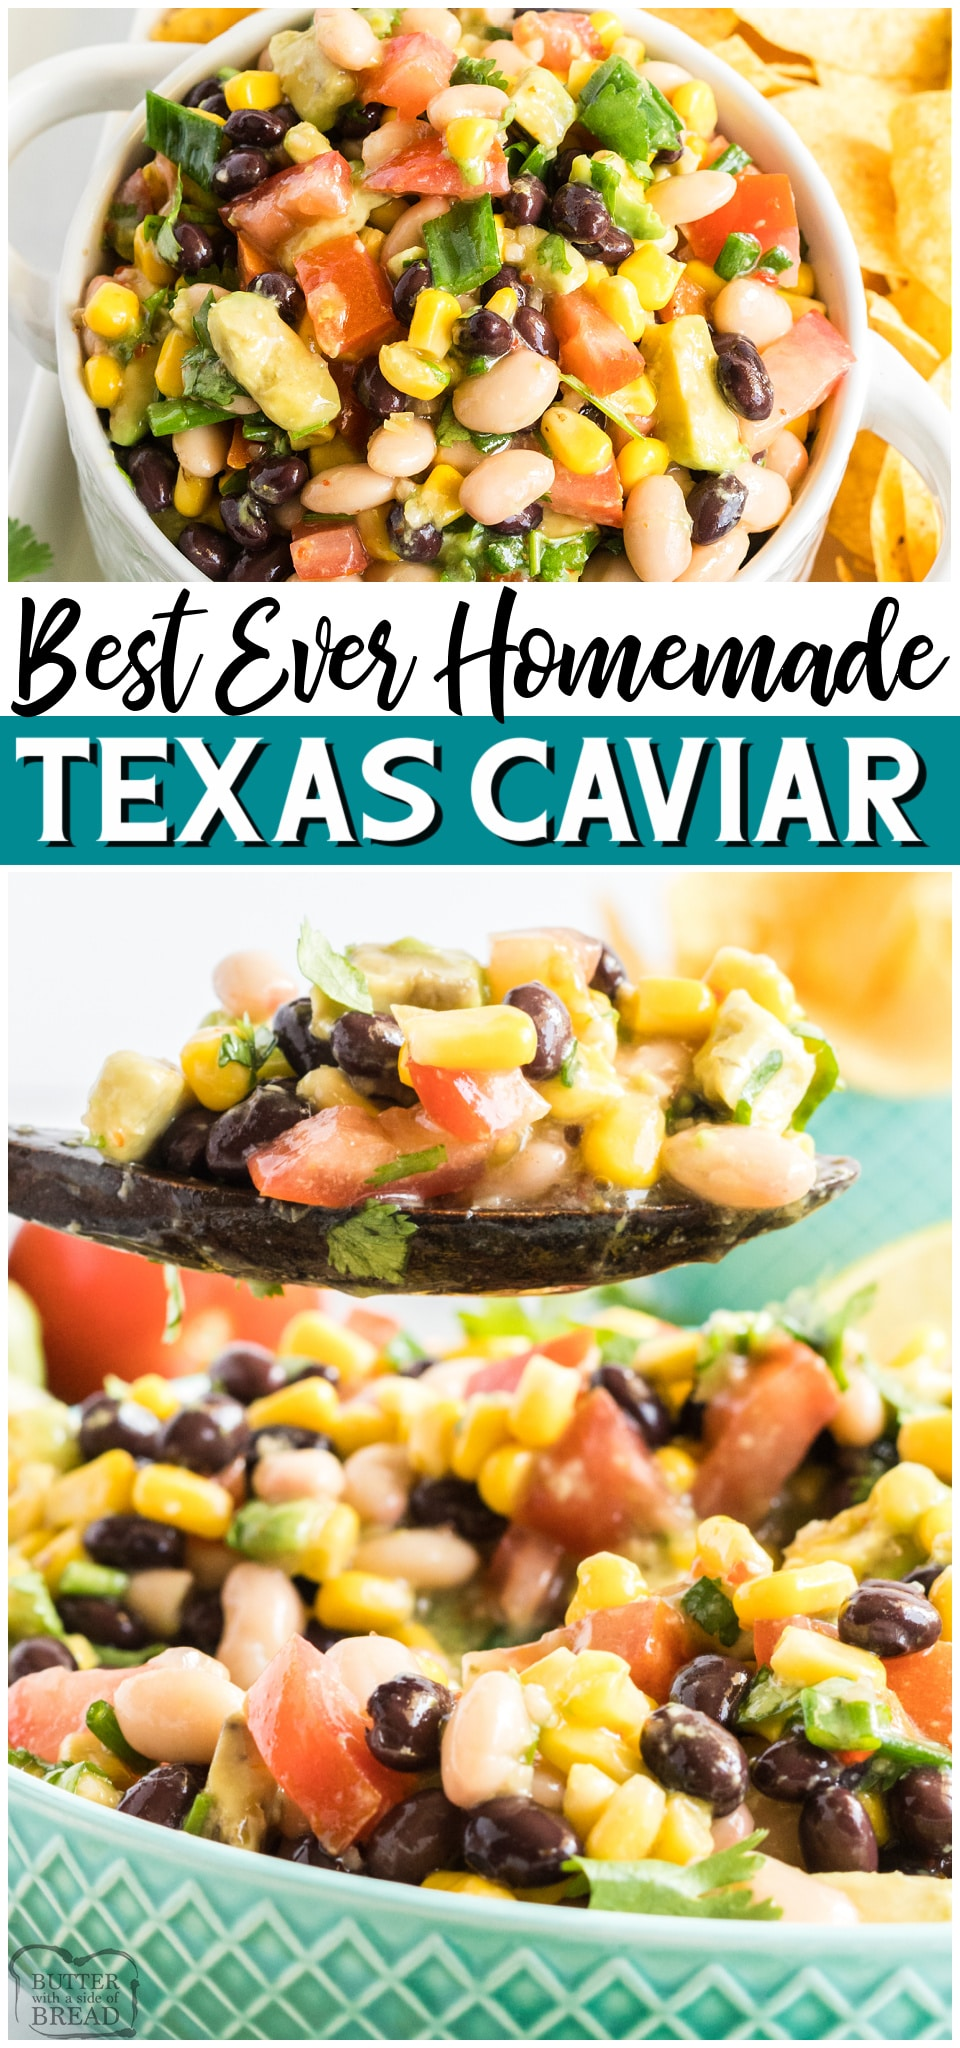 Best Texas Caviar recipe packed with fresh flavors like sweet corn, cilantro, tomato & avocado. Easy Texas Caviar Bean Dip is a popular savory appetizer perfect for game day!